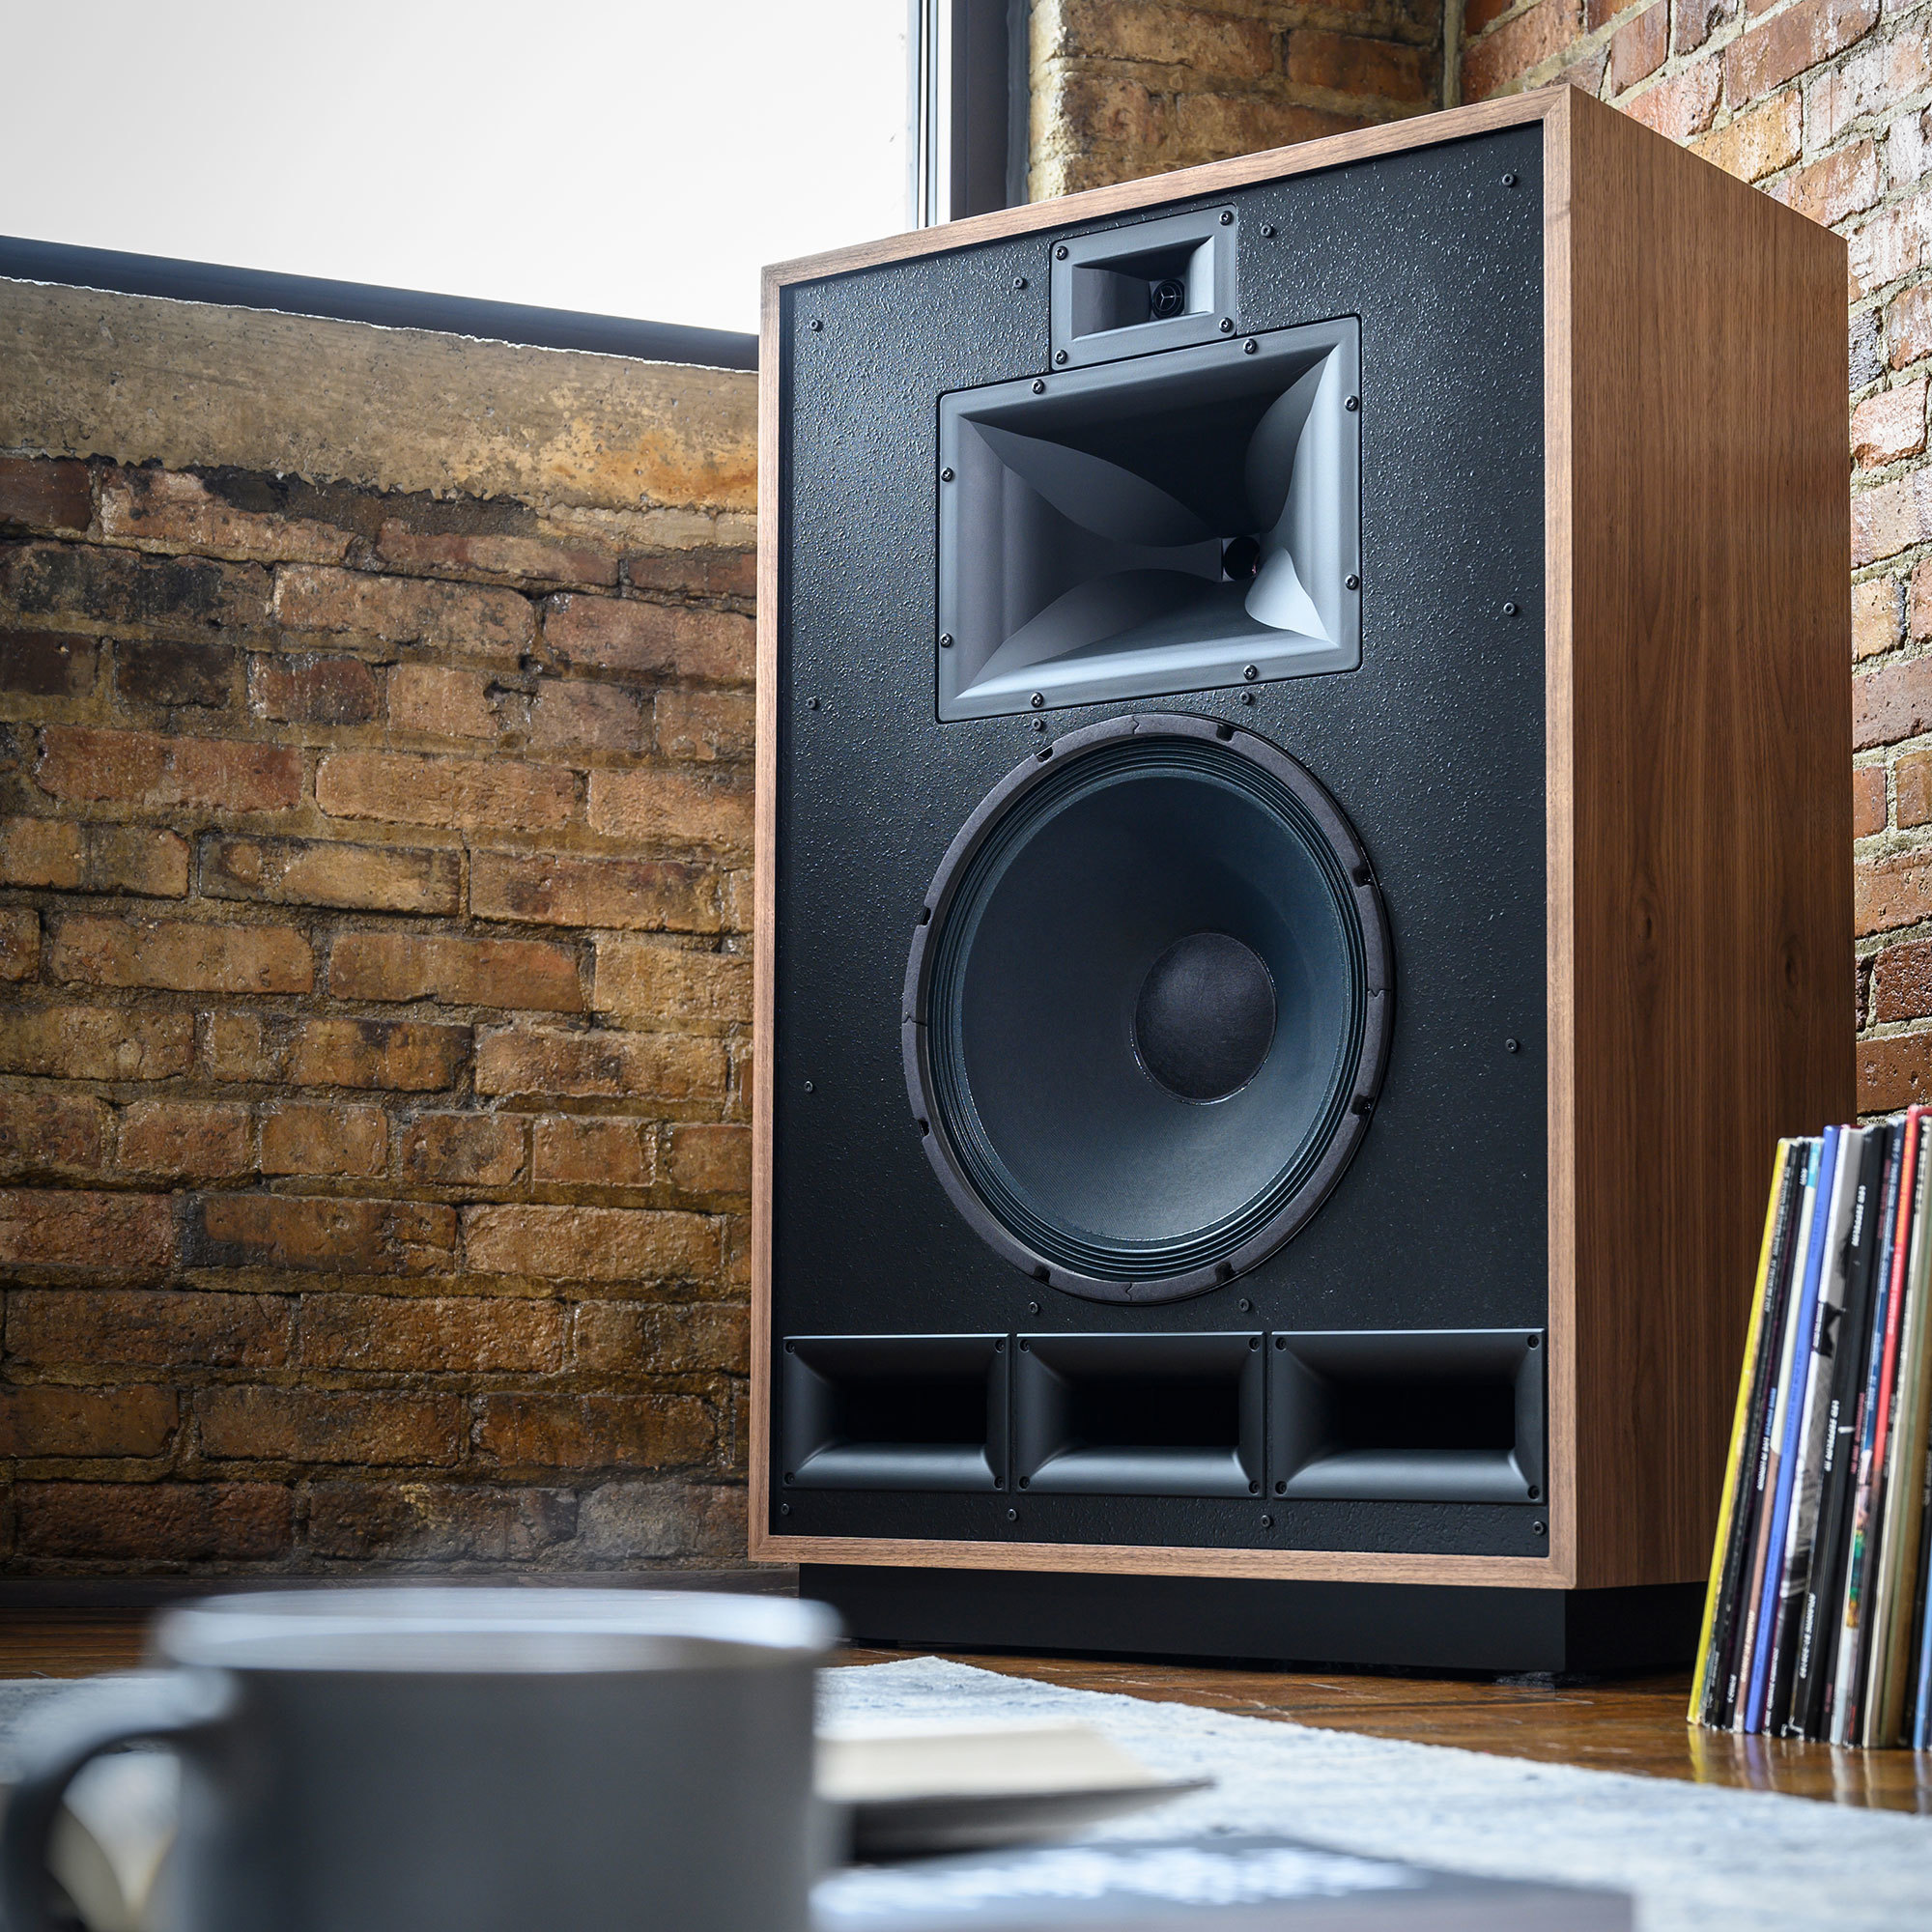 https://d2um2qdswy1tb0.cloudfront.net/product-images/Klipsch_Cornwall_IV_in-acorner.jpg?mtime=20191204103505&focal=none